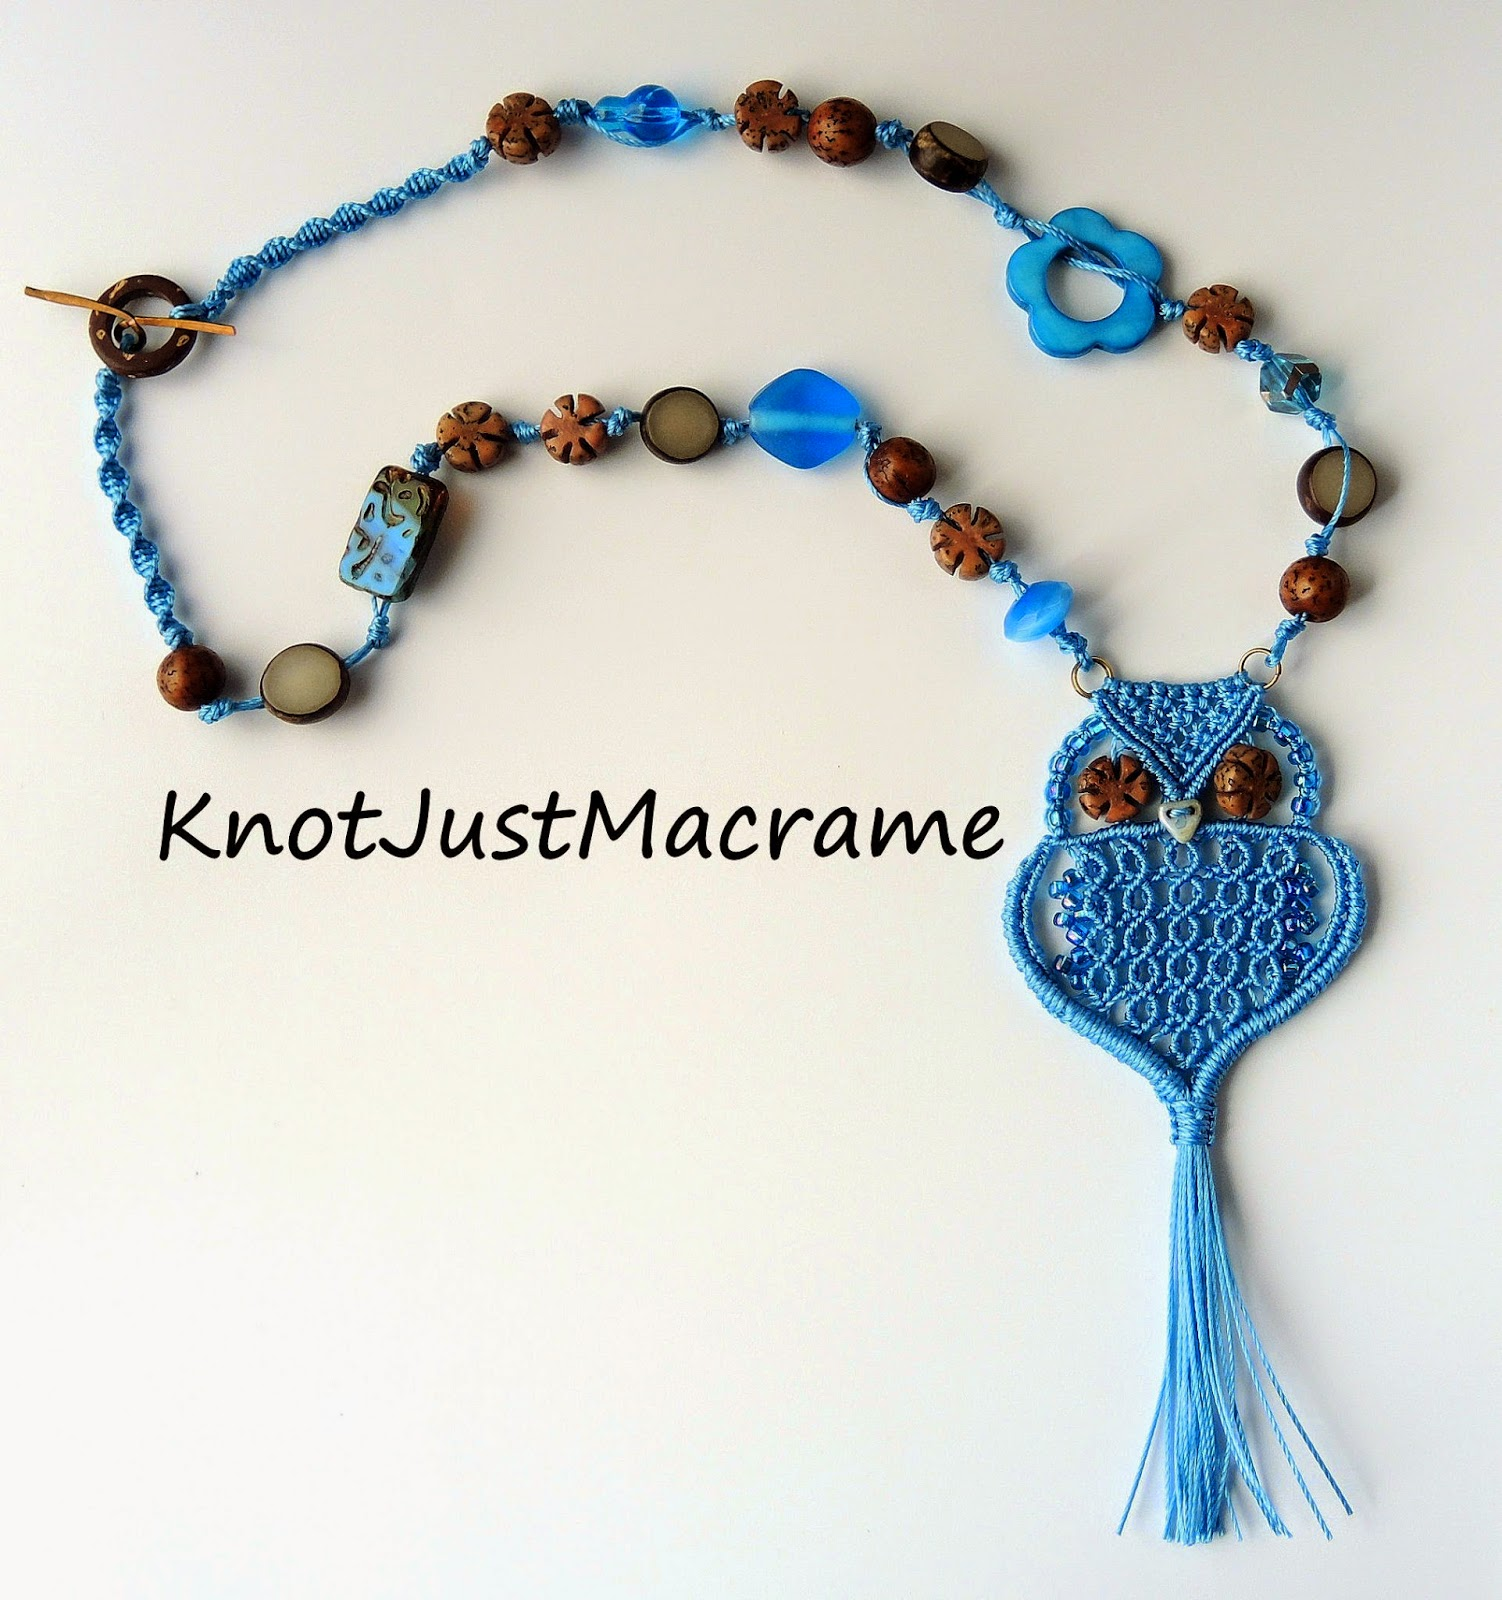 Micro macrame owl pendant with salwag seed, buri seed, and glass beads.